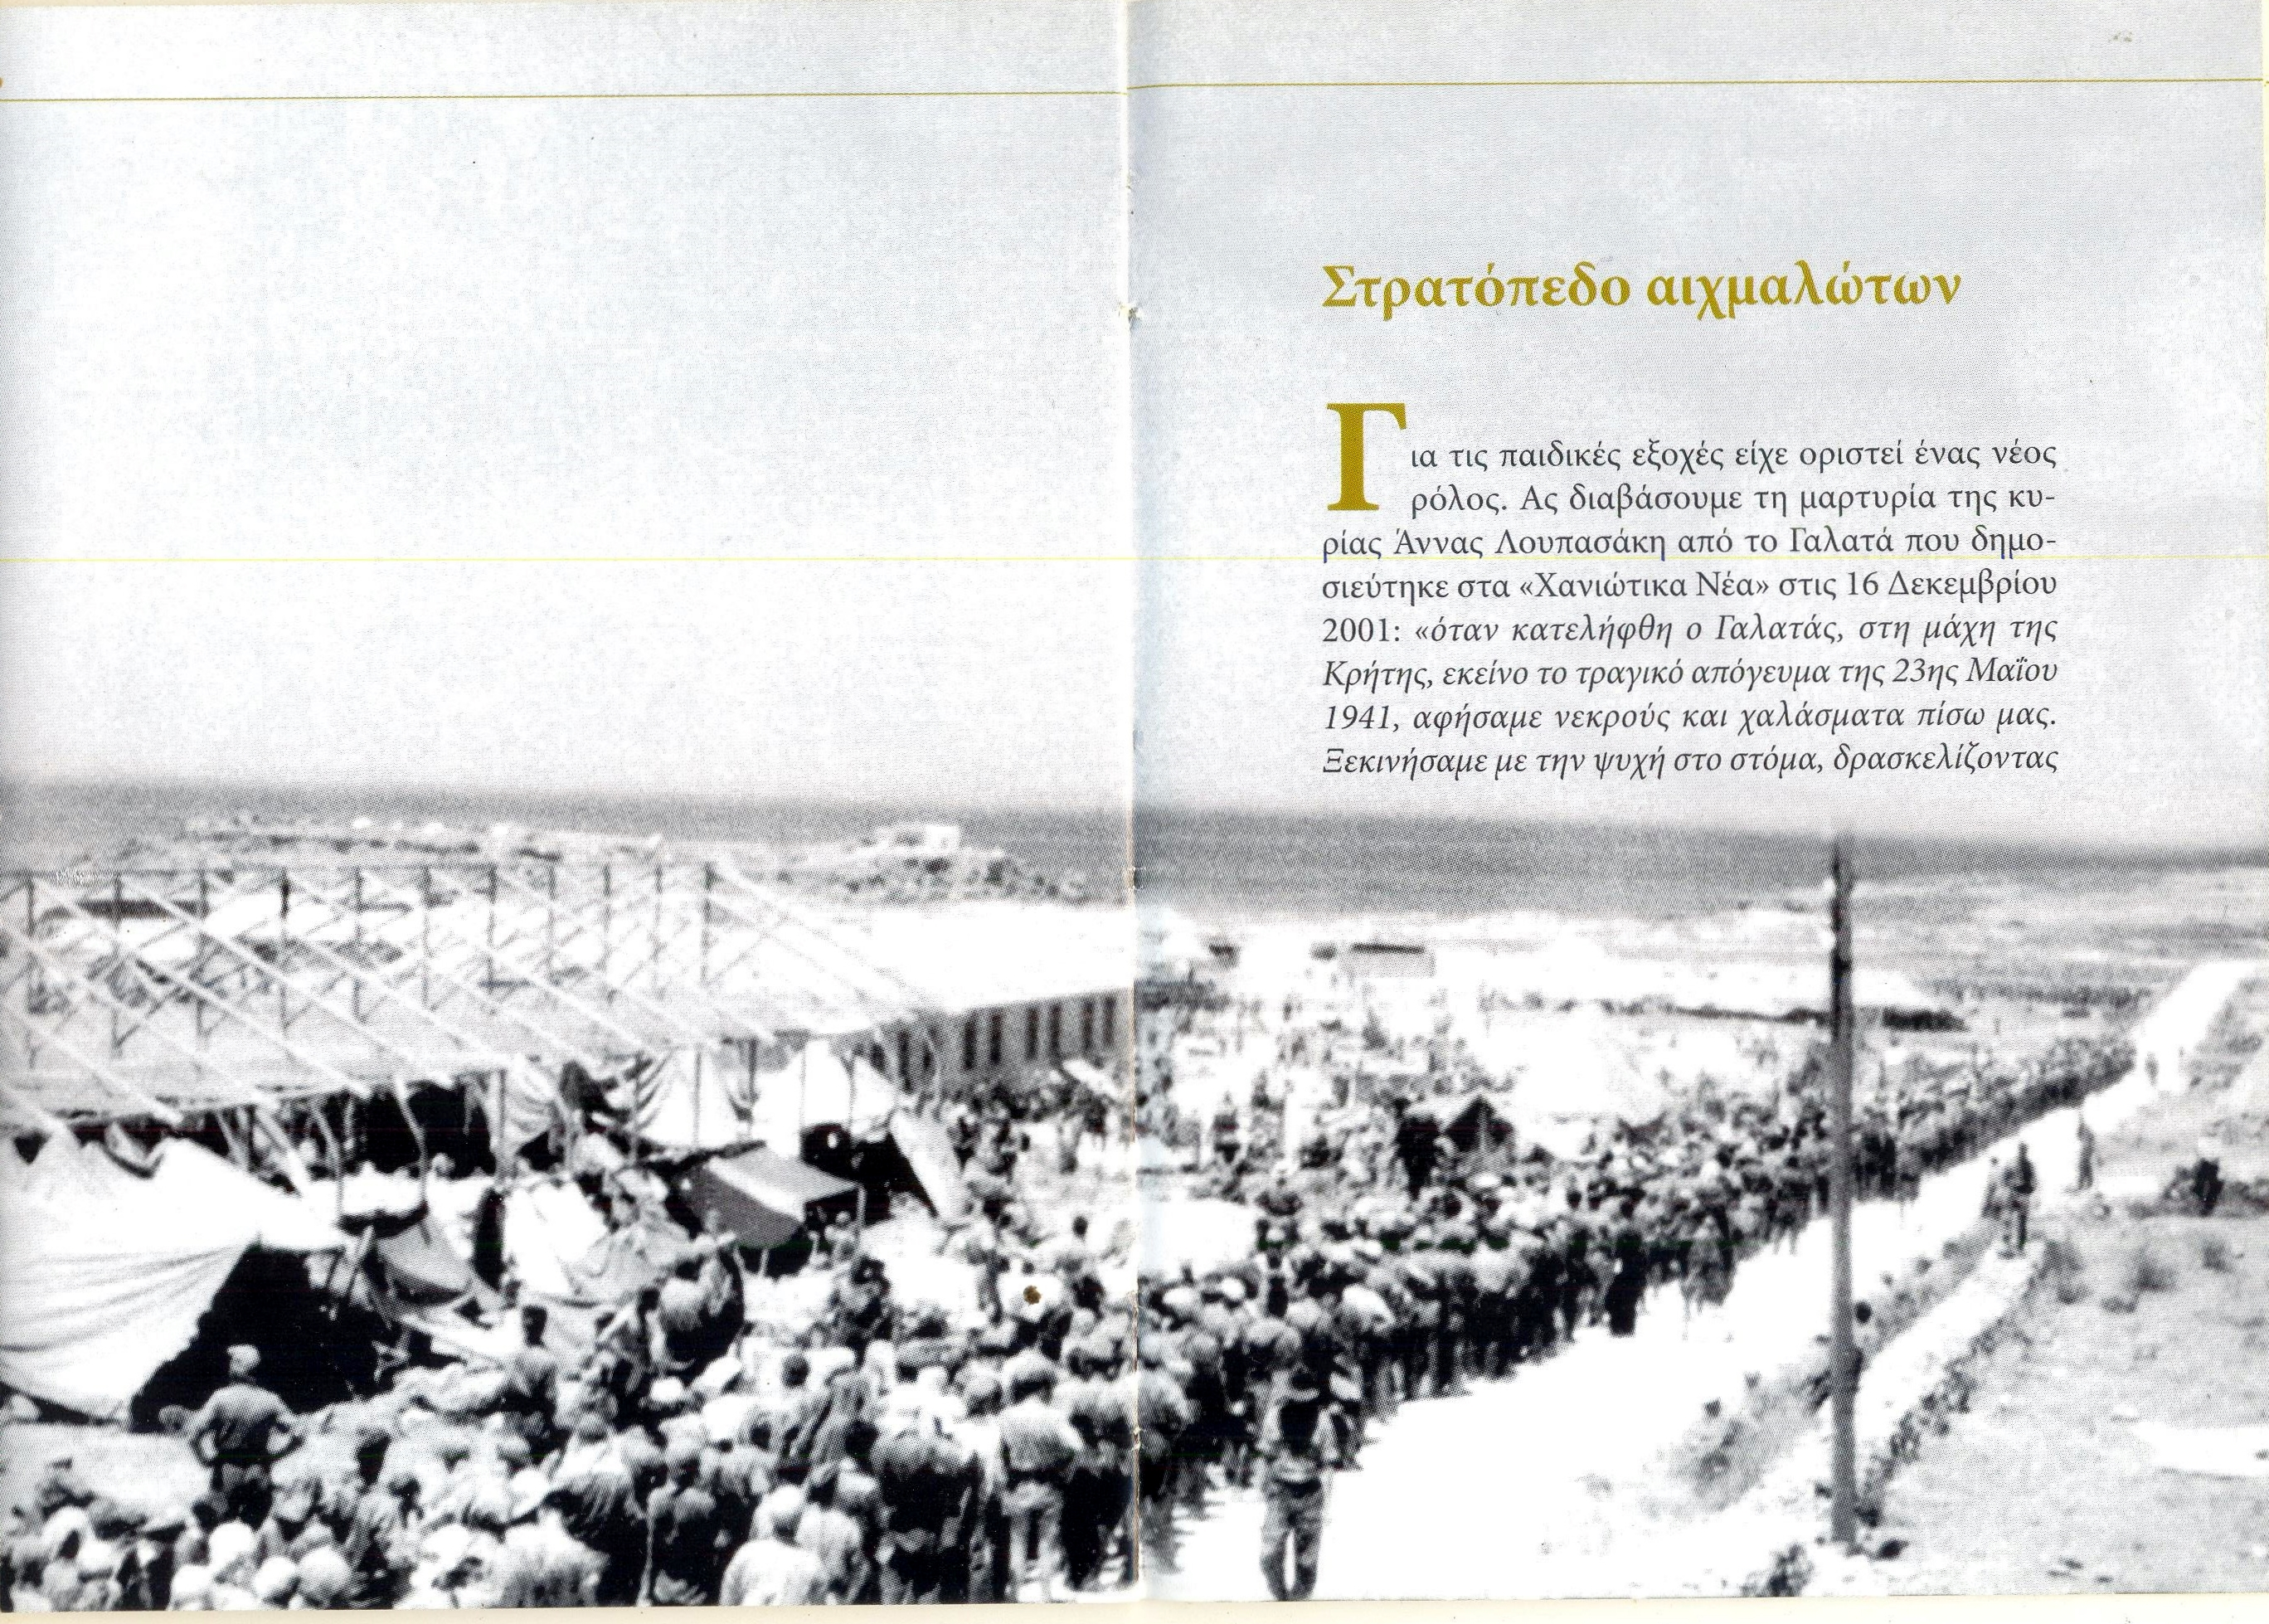 Another view of the POW camp in Agii Apostoli, from Manolis Manousakas' book